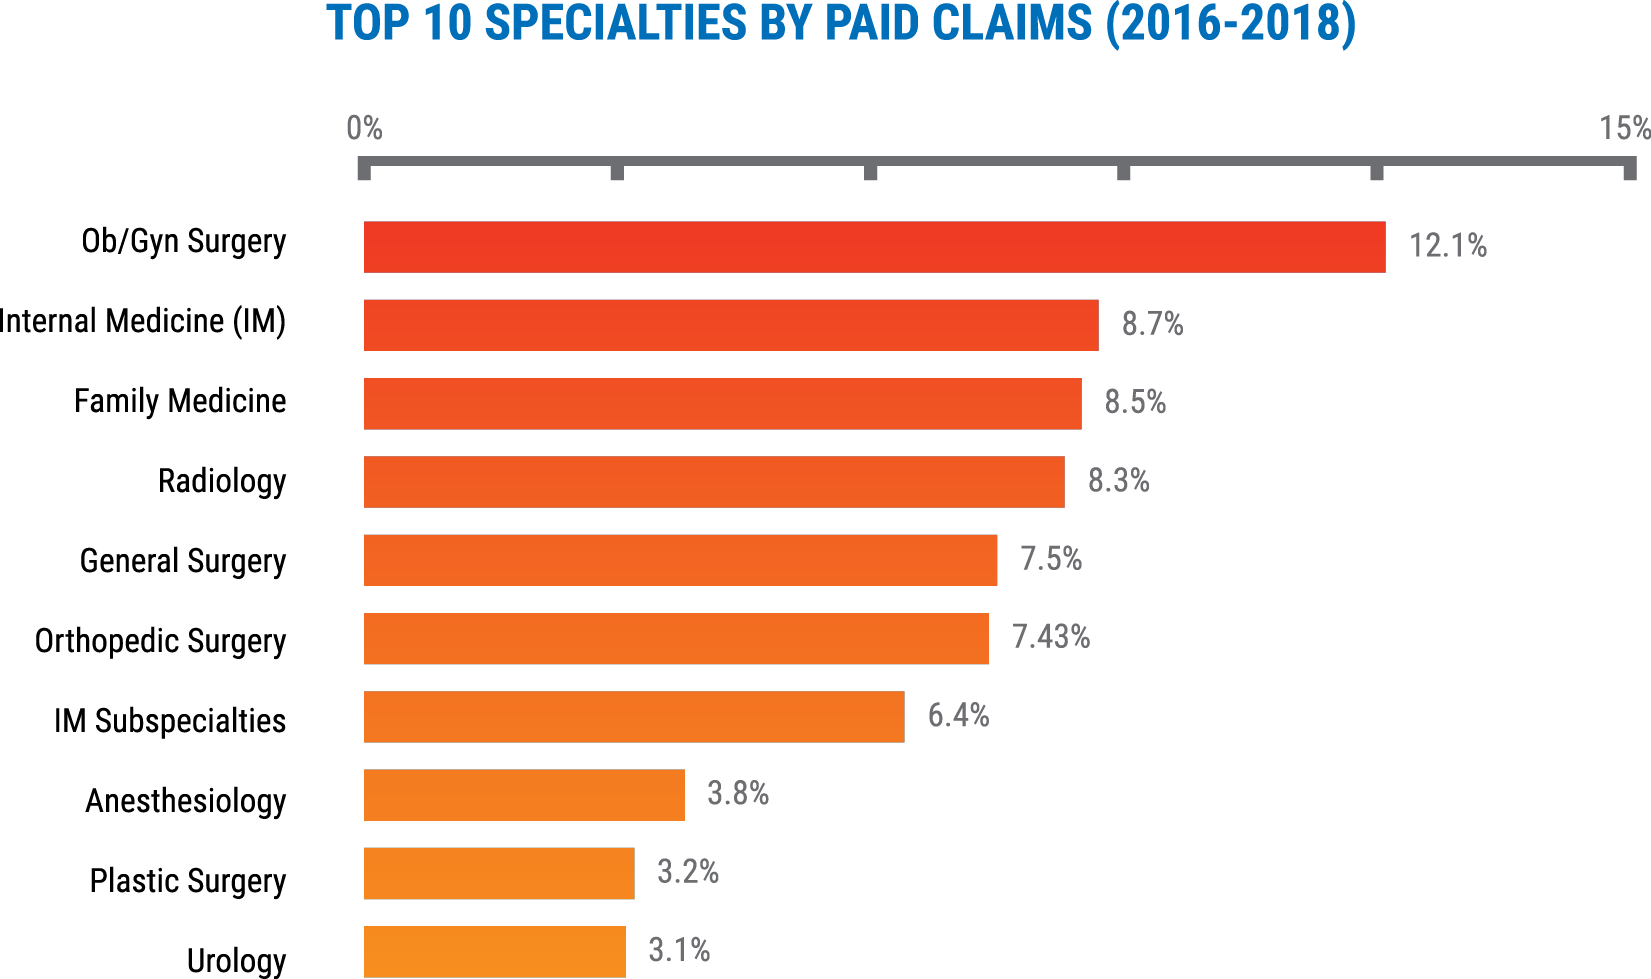 Top 10 specialties by closed claims